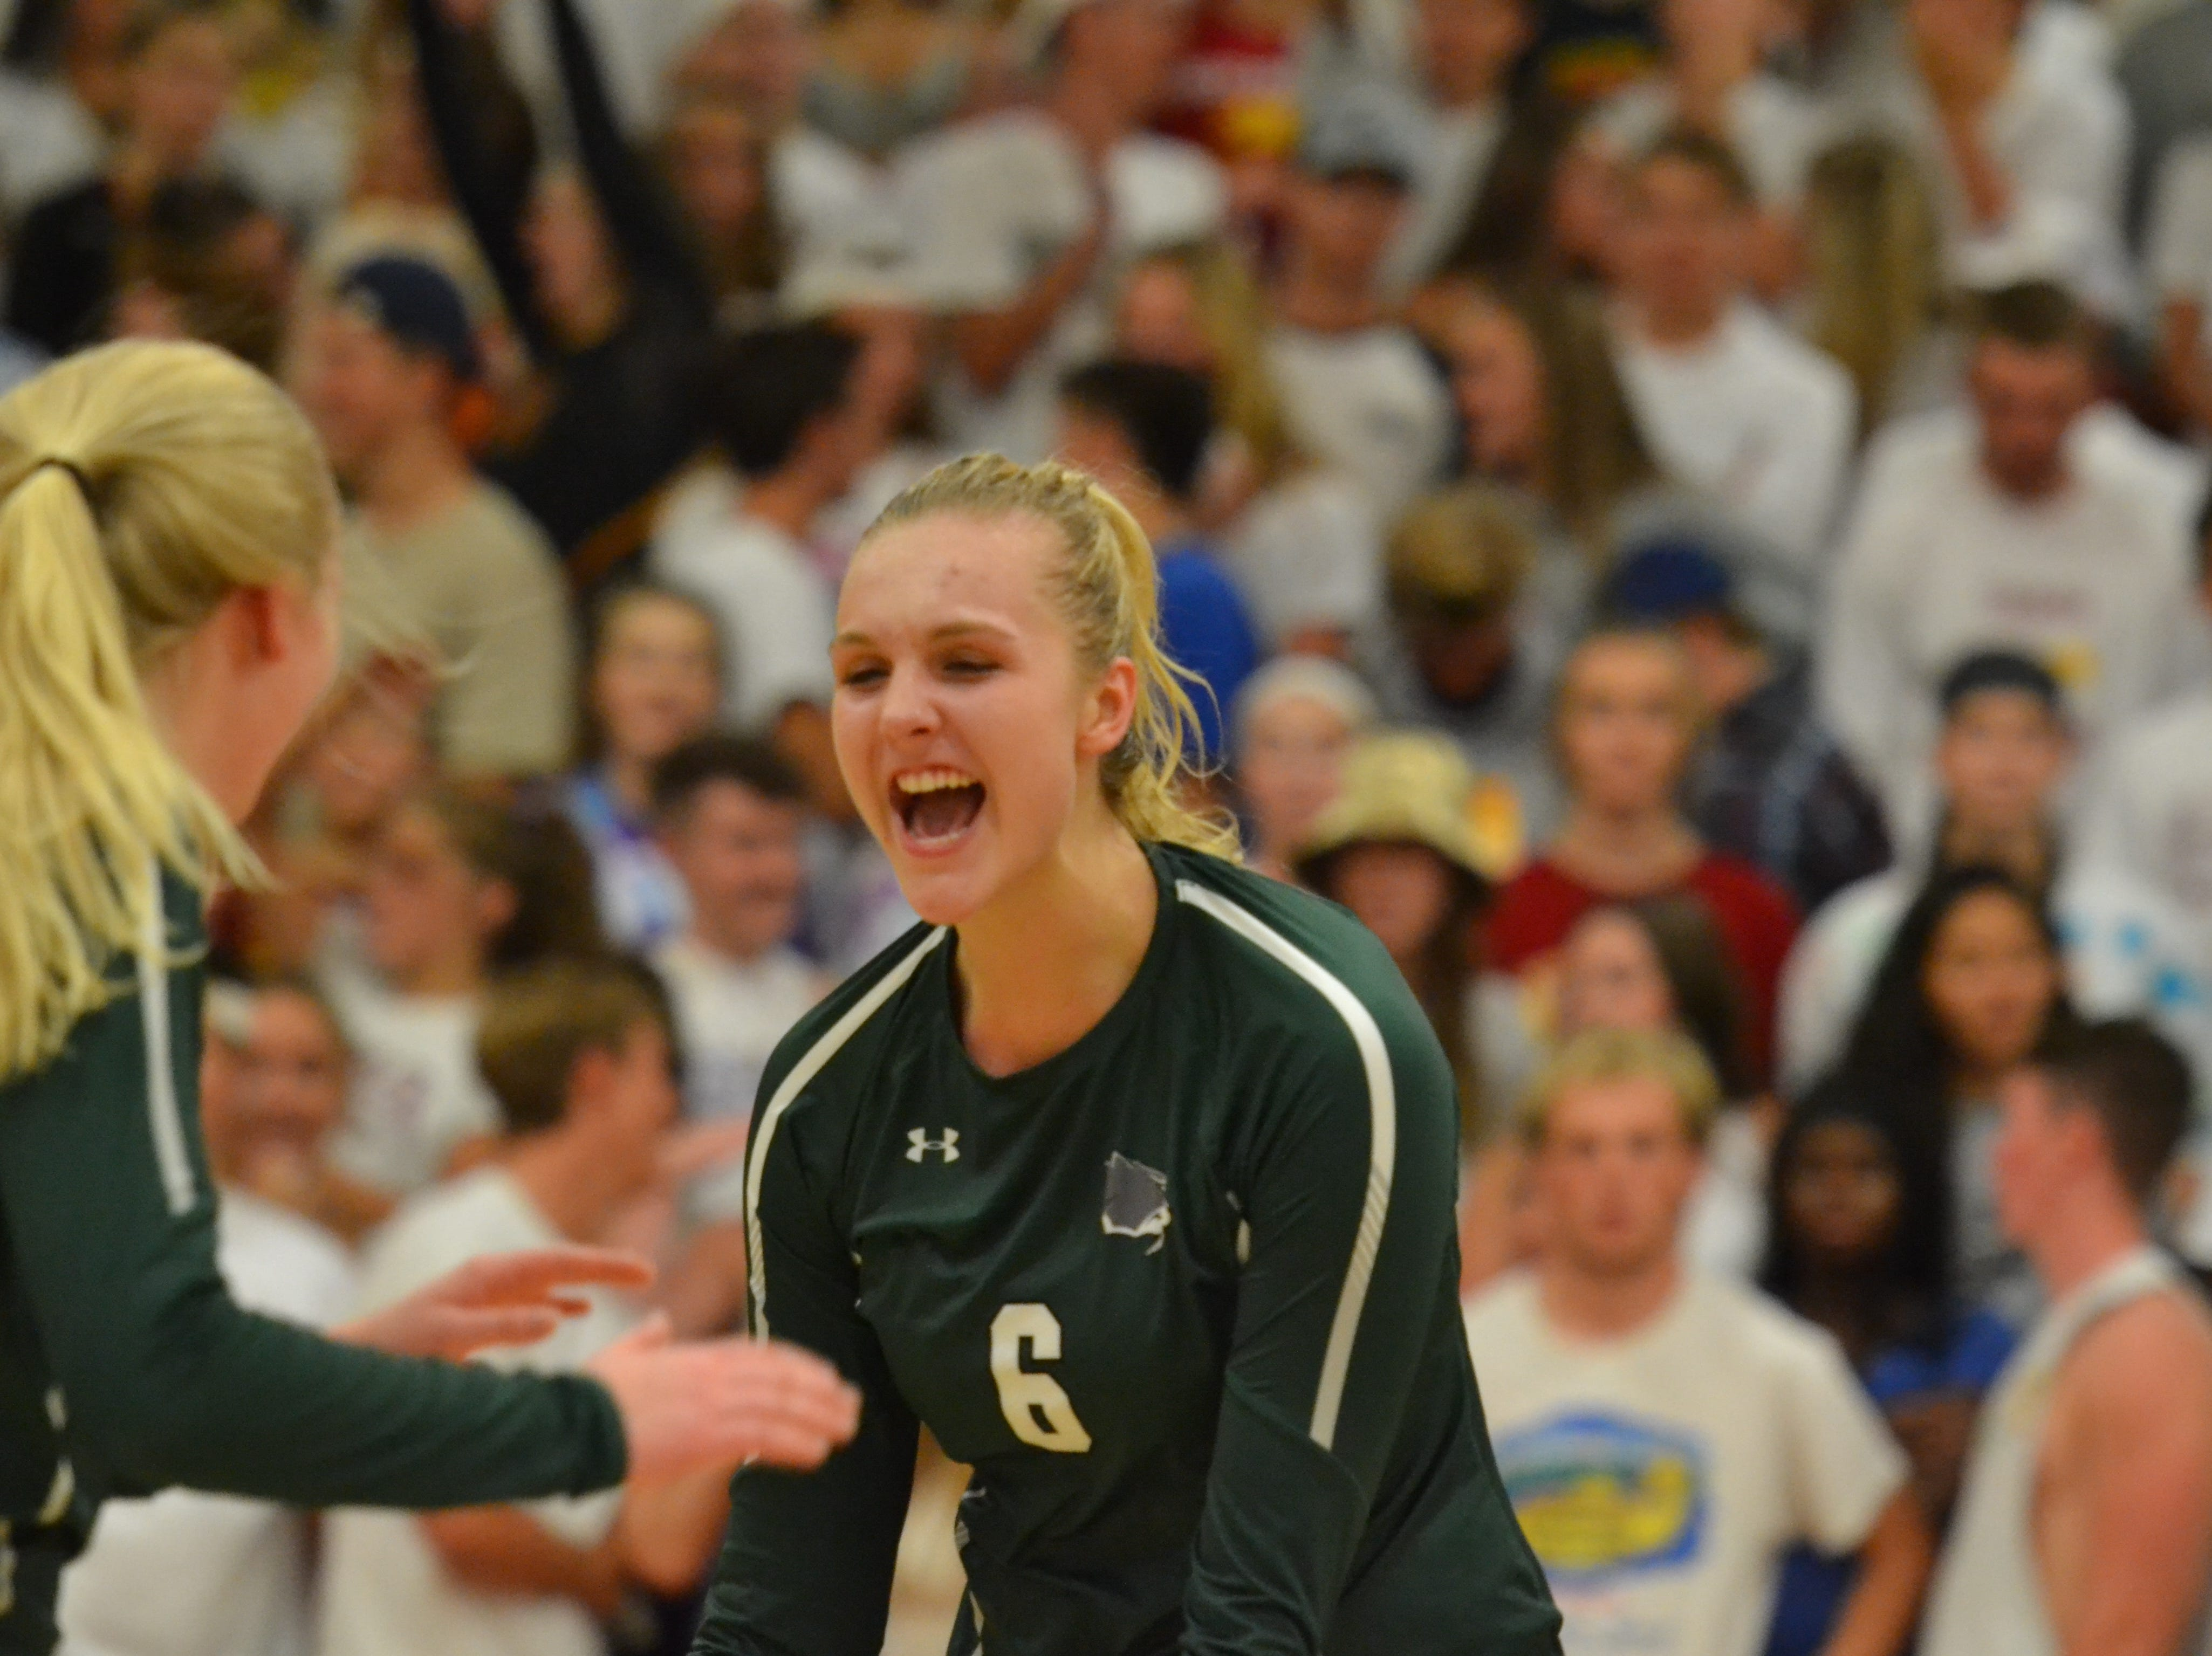 Fossil Ridge's Riley Zuhn celebrates a point during Tuesday night's 3-1 volleyball loss to Fossil Ridge at Rocky Mountain.